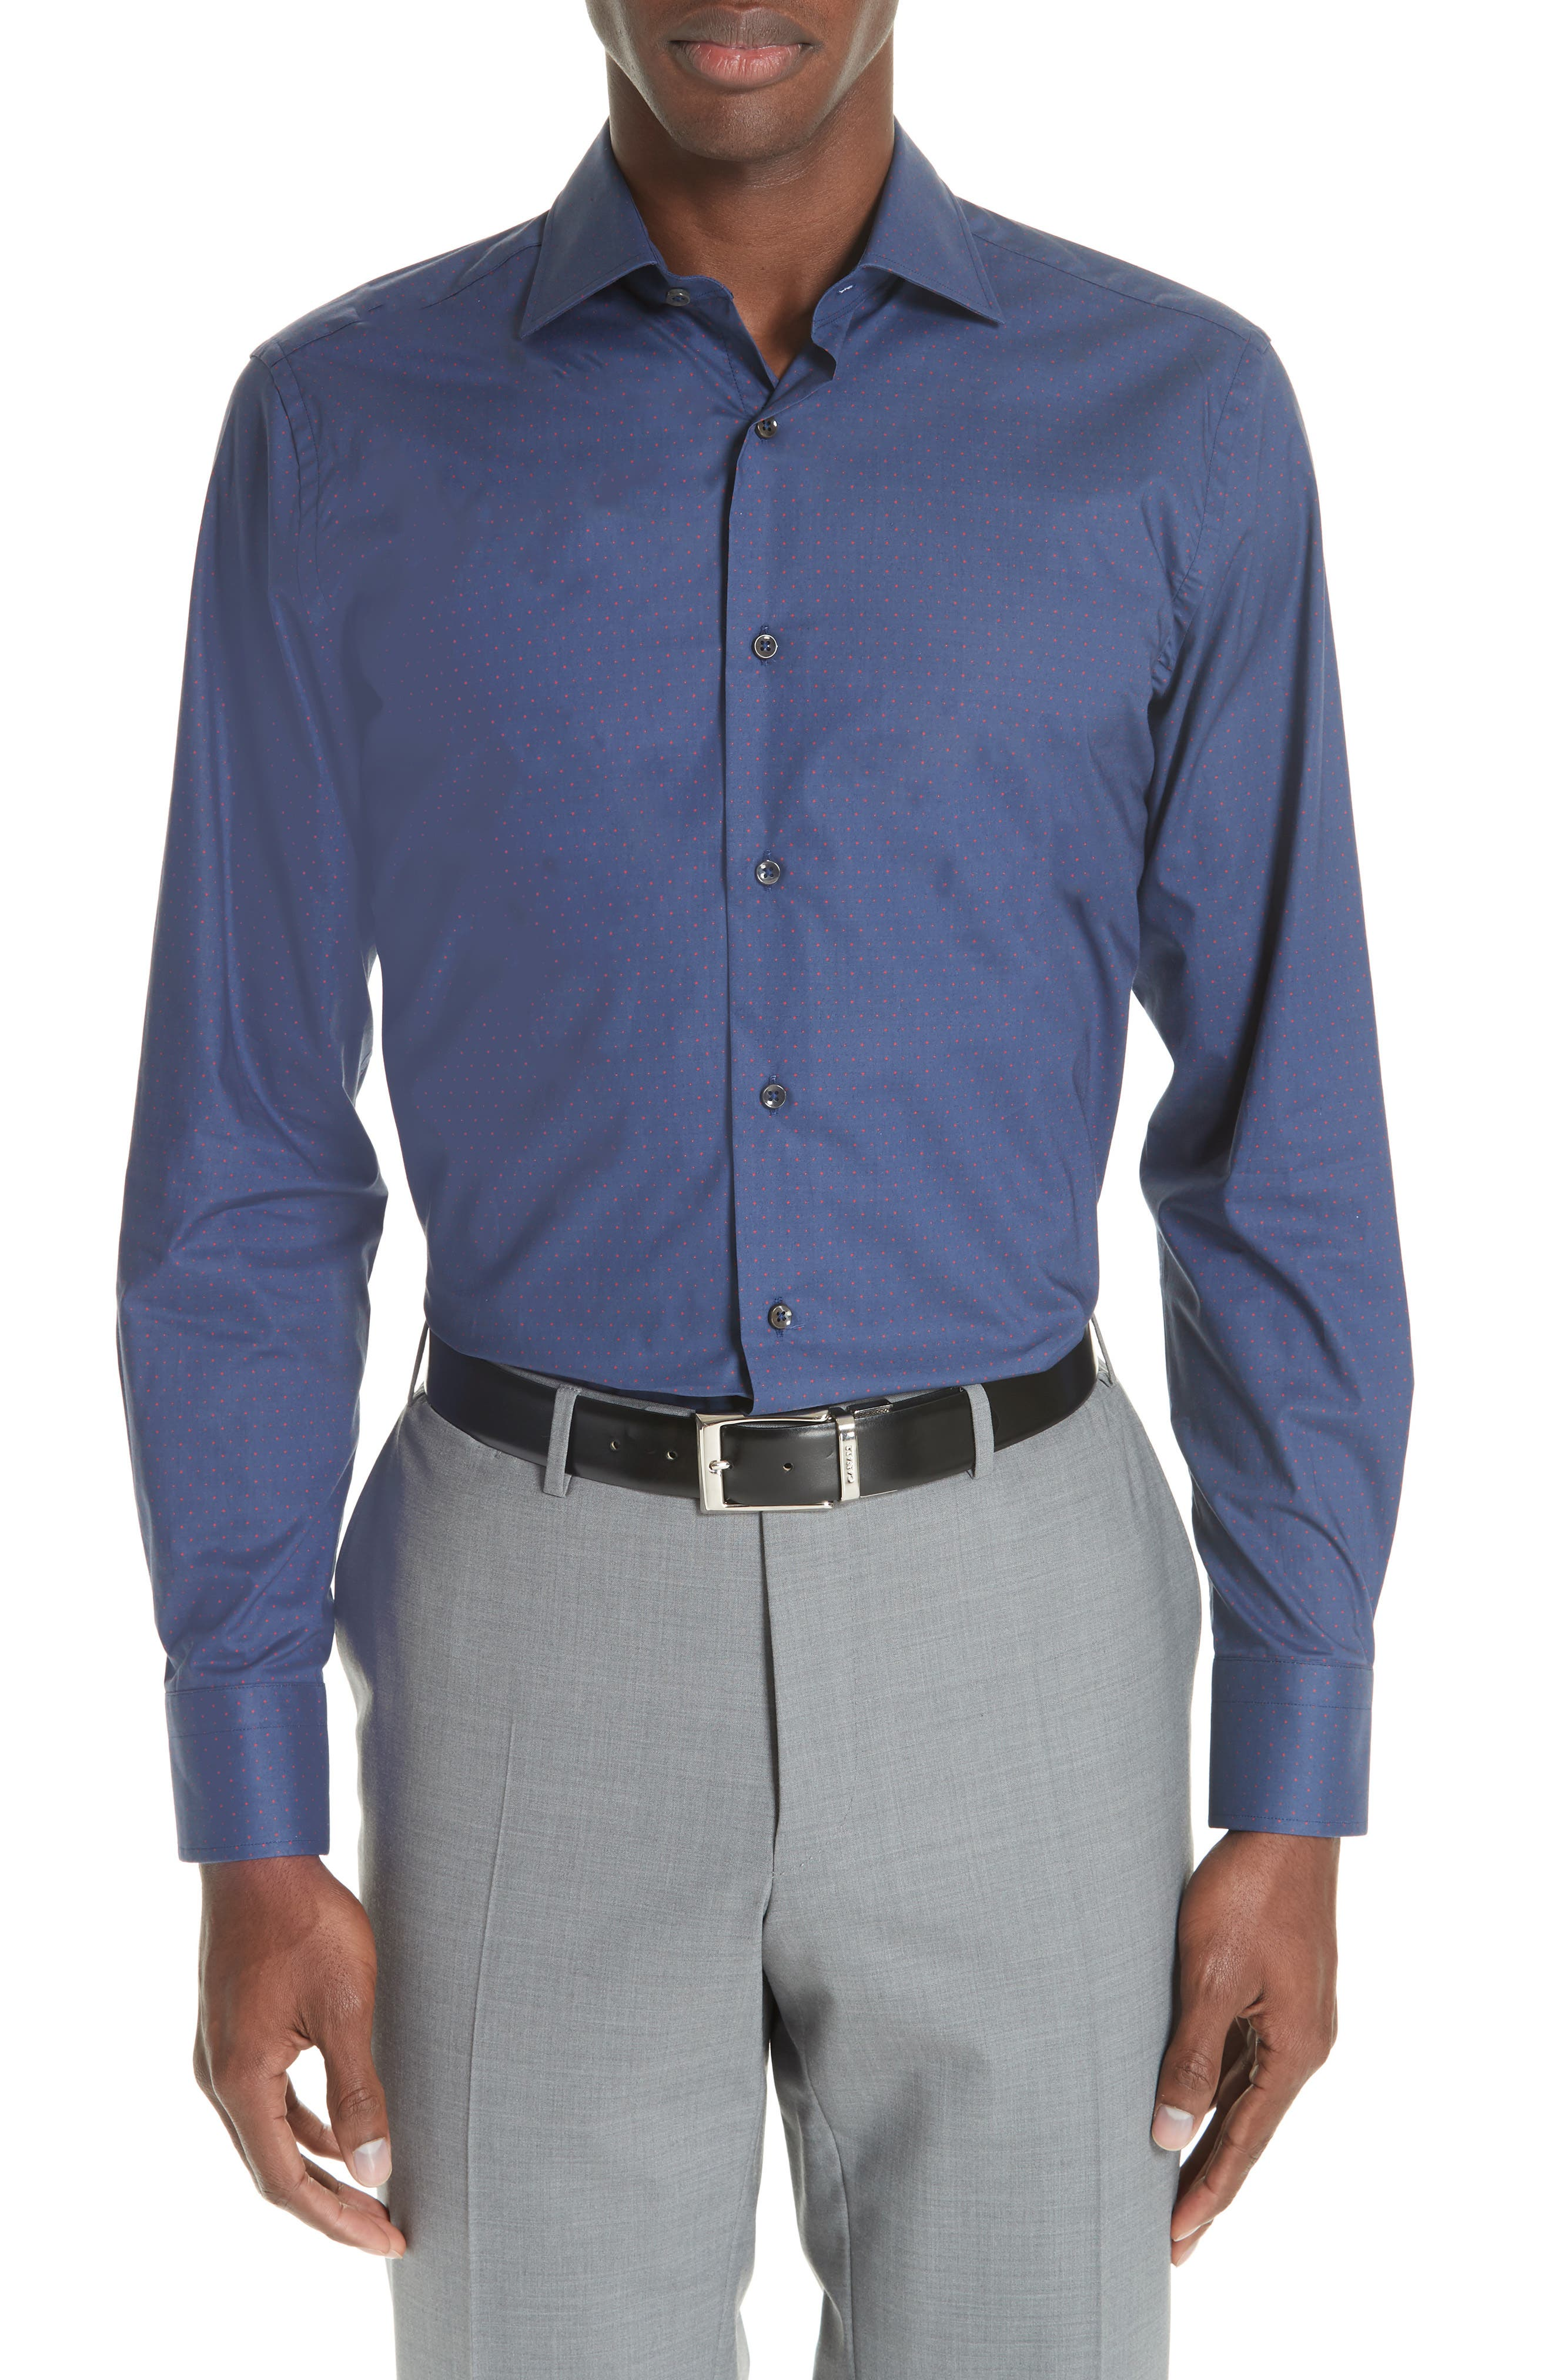 Regular Fit Dot Dress Shirt,                             Main thumbnail 1, color,                             DARK BLUE